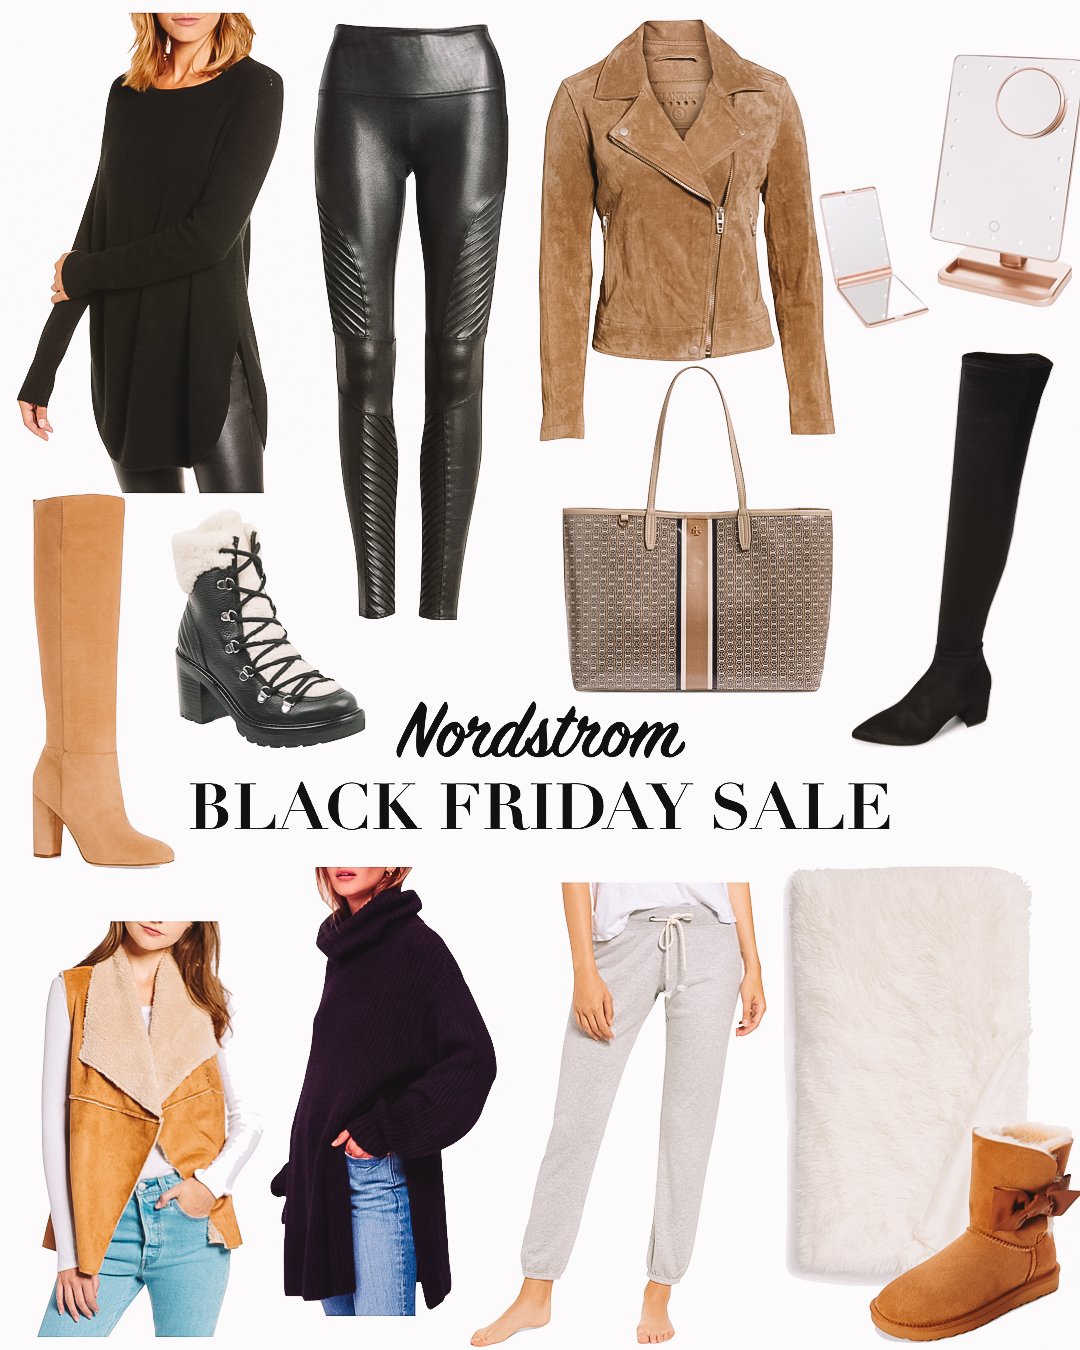 585c6ecb9a4 Top Rated Nordstrom Black Friday Sale 2018 Picks - Clothing